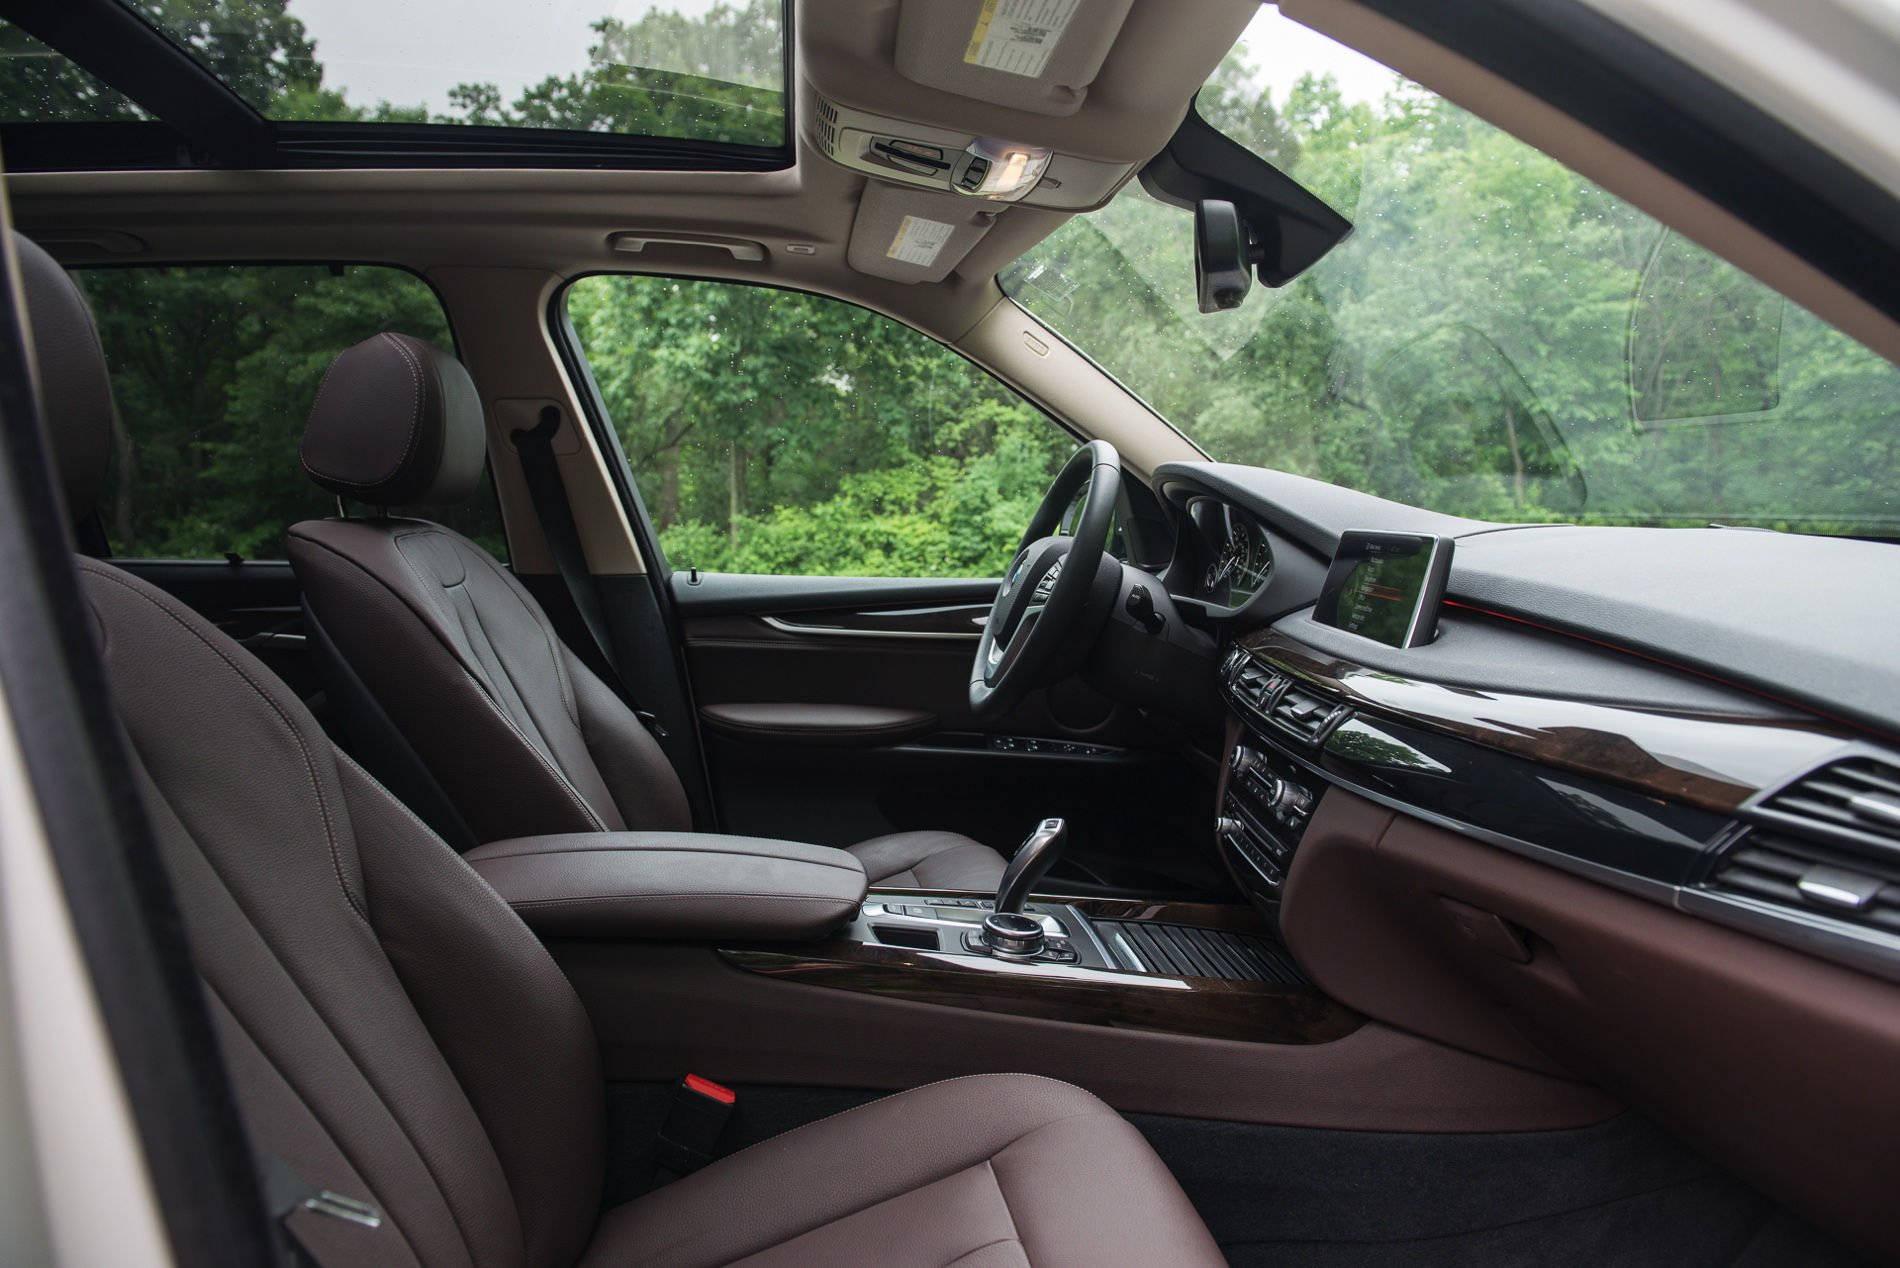 All highlights of the bmw x5 suv (g05): Who Are All The Bmw Suvs For